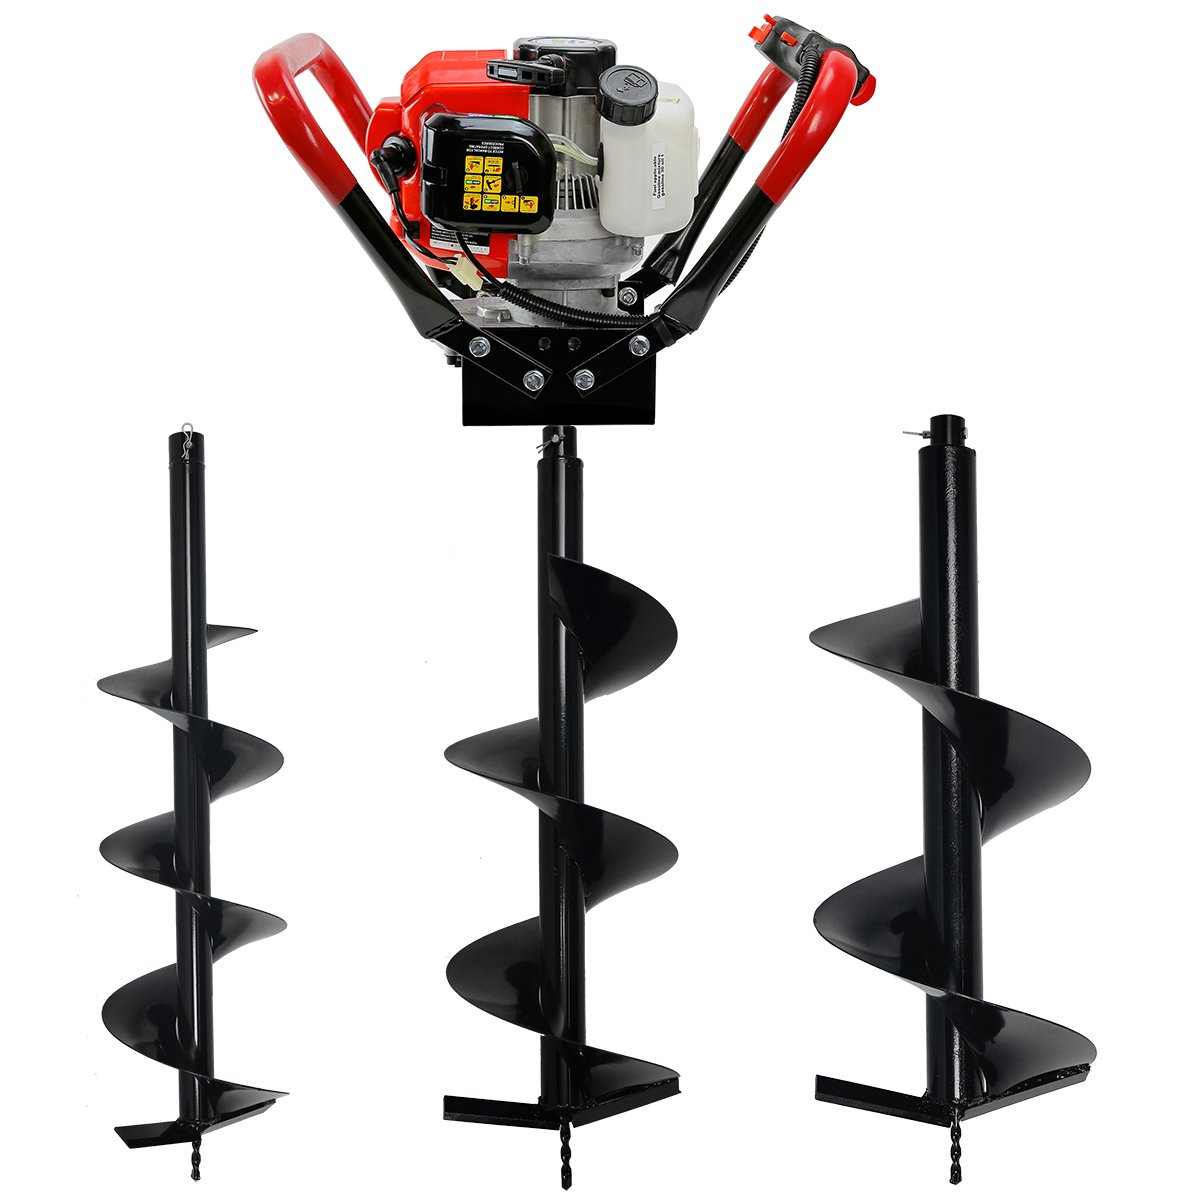 V-Type 55CC 2 Stroke Gas Posthole Digger One Man Auger (Digger + 8 10 12Bits) XtremepowerUS